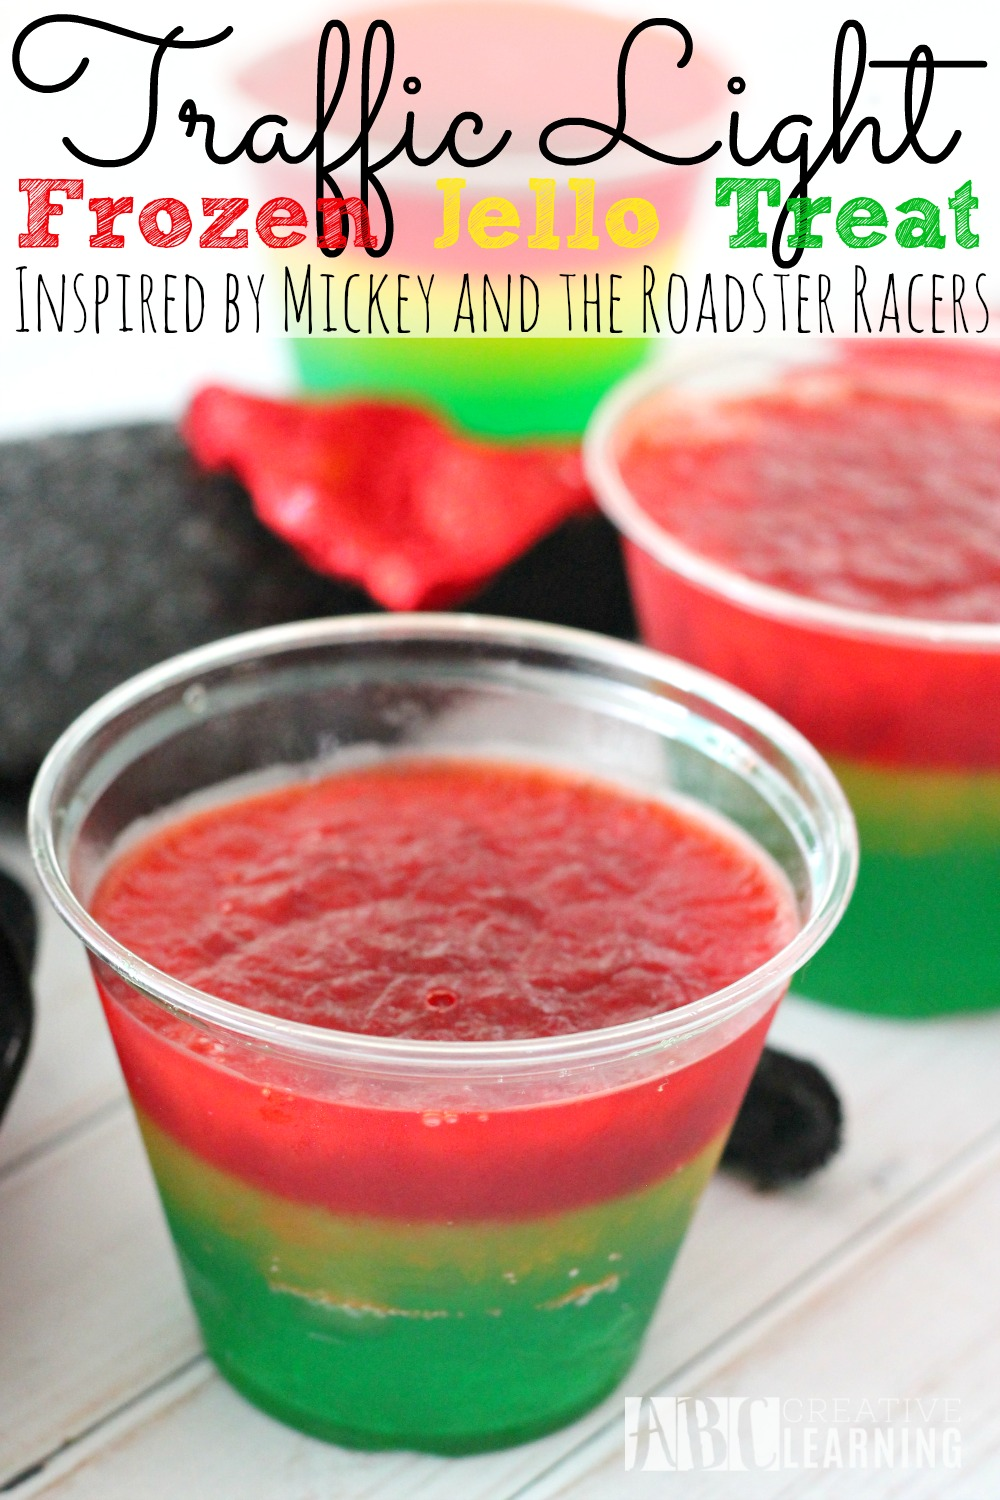 Traffic Light Frozen Jello Treat Mickey and the Roadster Racers